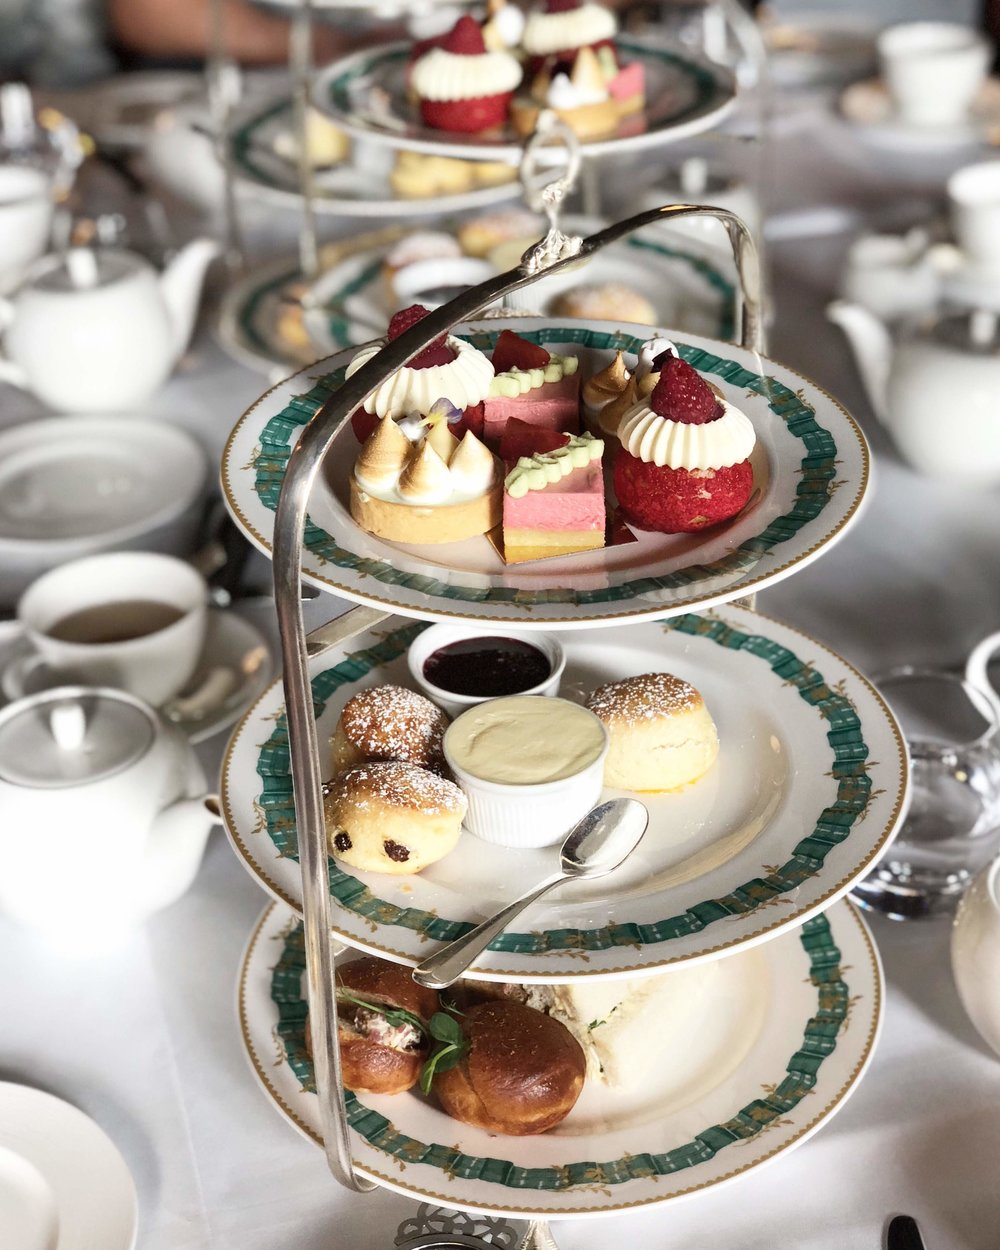 Tea at the Cliveden House